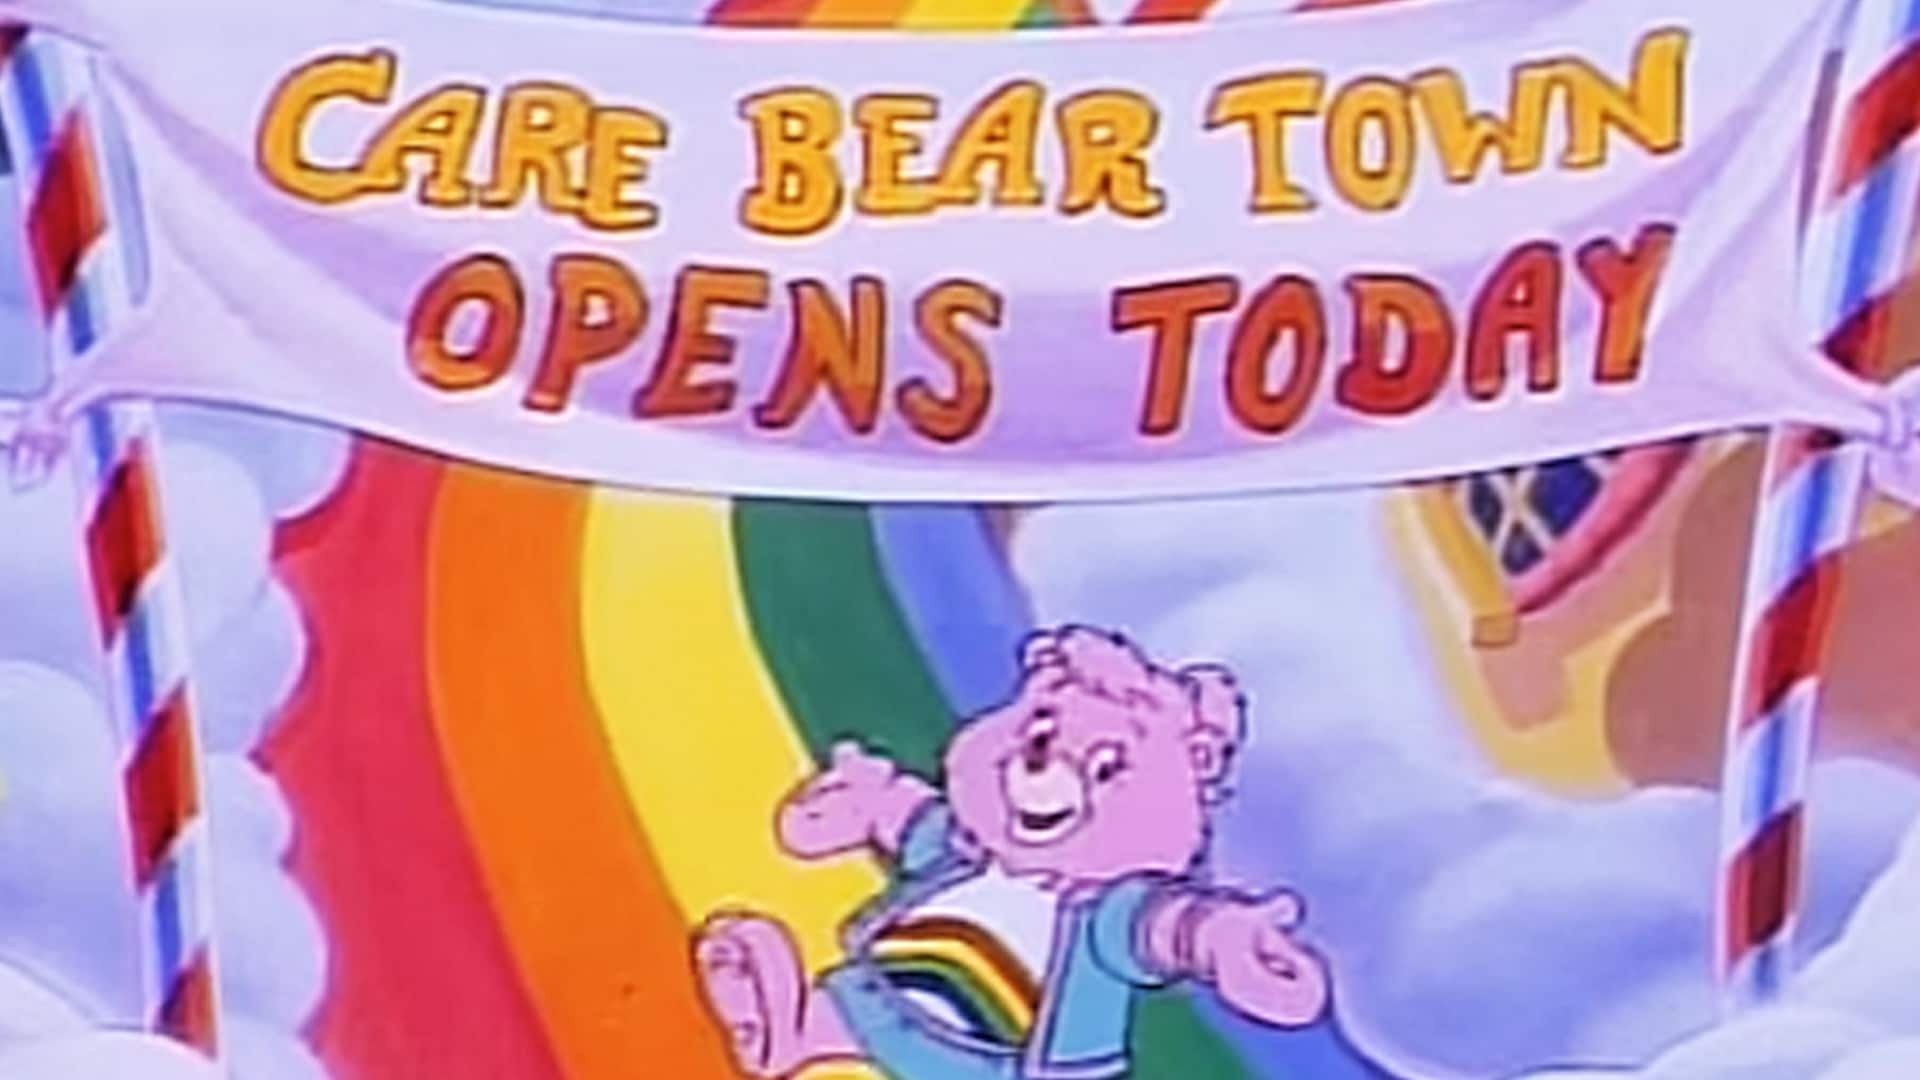 Care Bear Town Parade